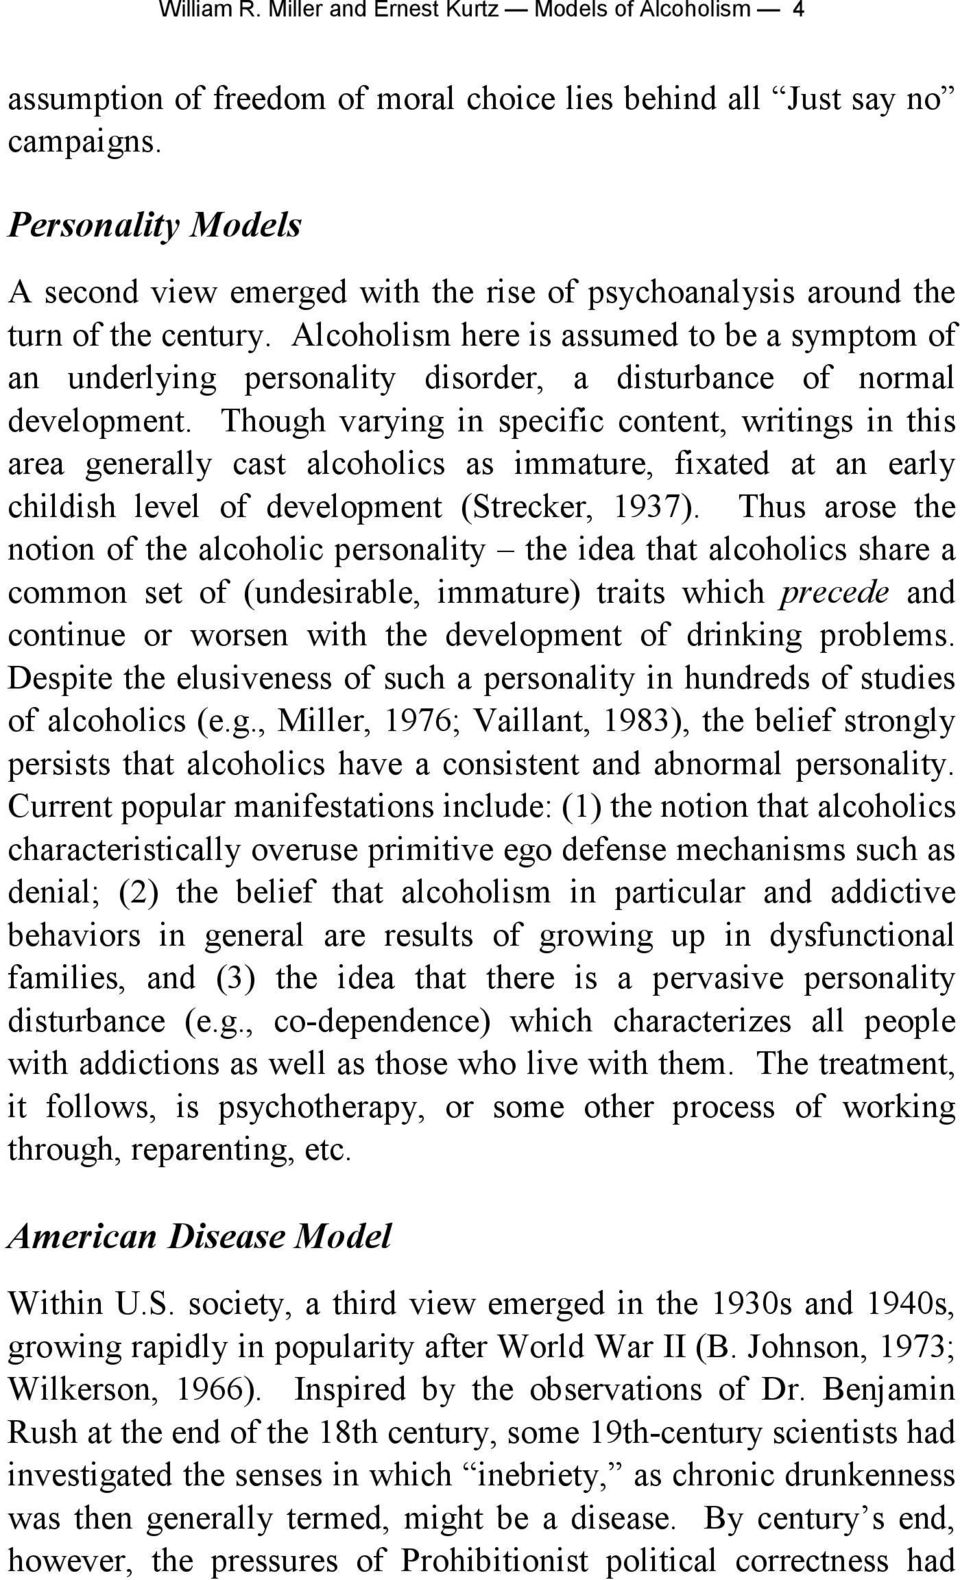 Alcoholism here is assumed to be a symptom of an underlying personality disorder, a disturbance of normal development.